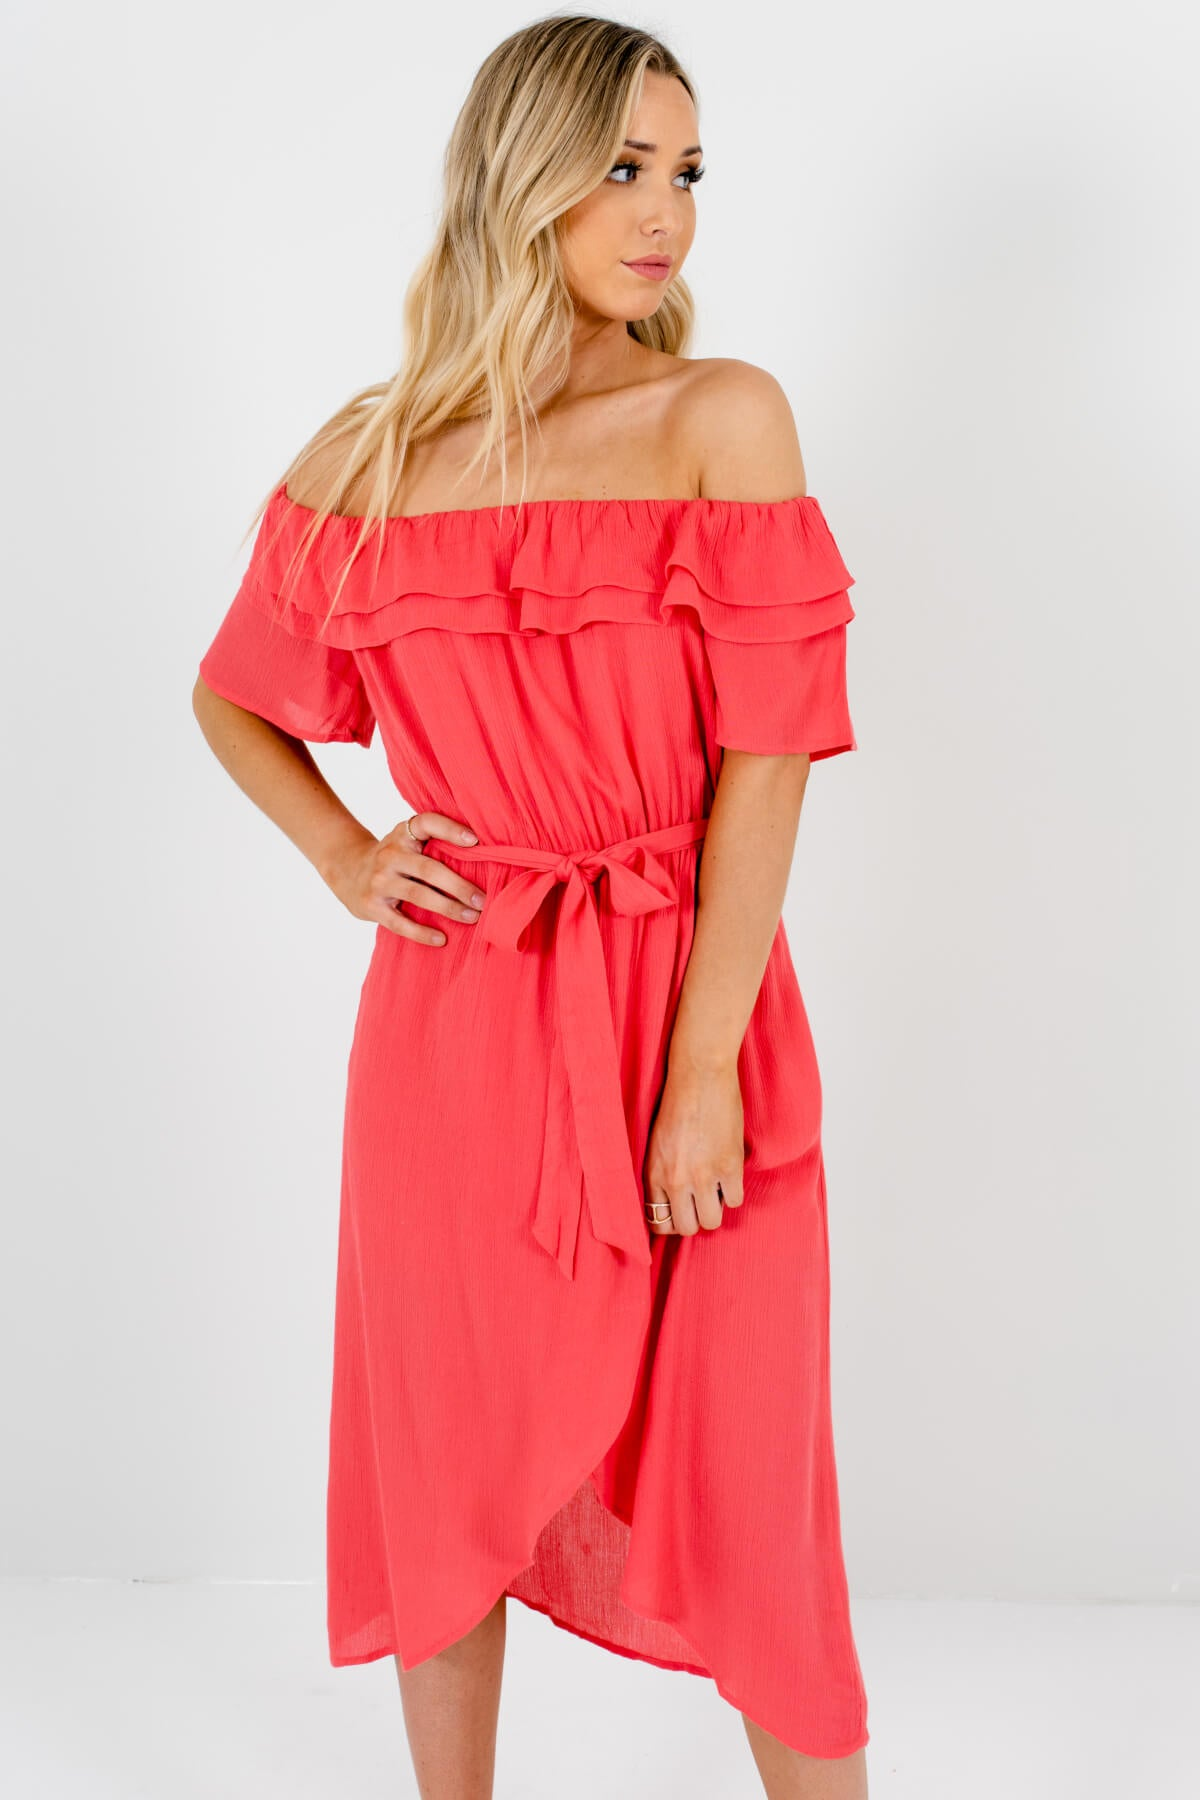 Coral Pink Off Shoulder Style Boutique Midi Dresses for Women